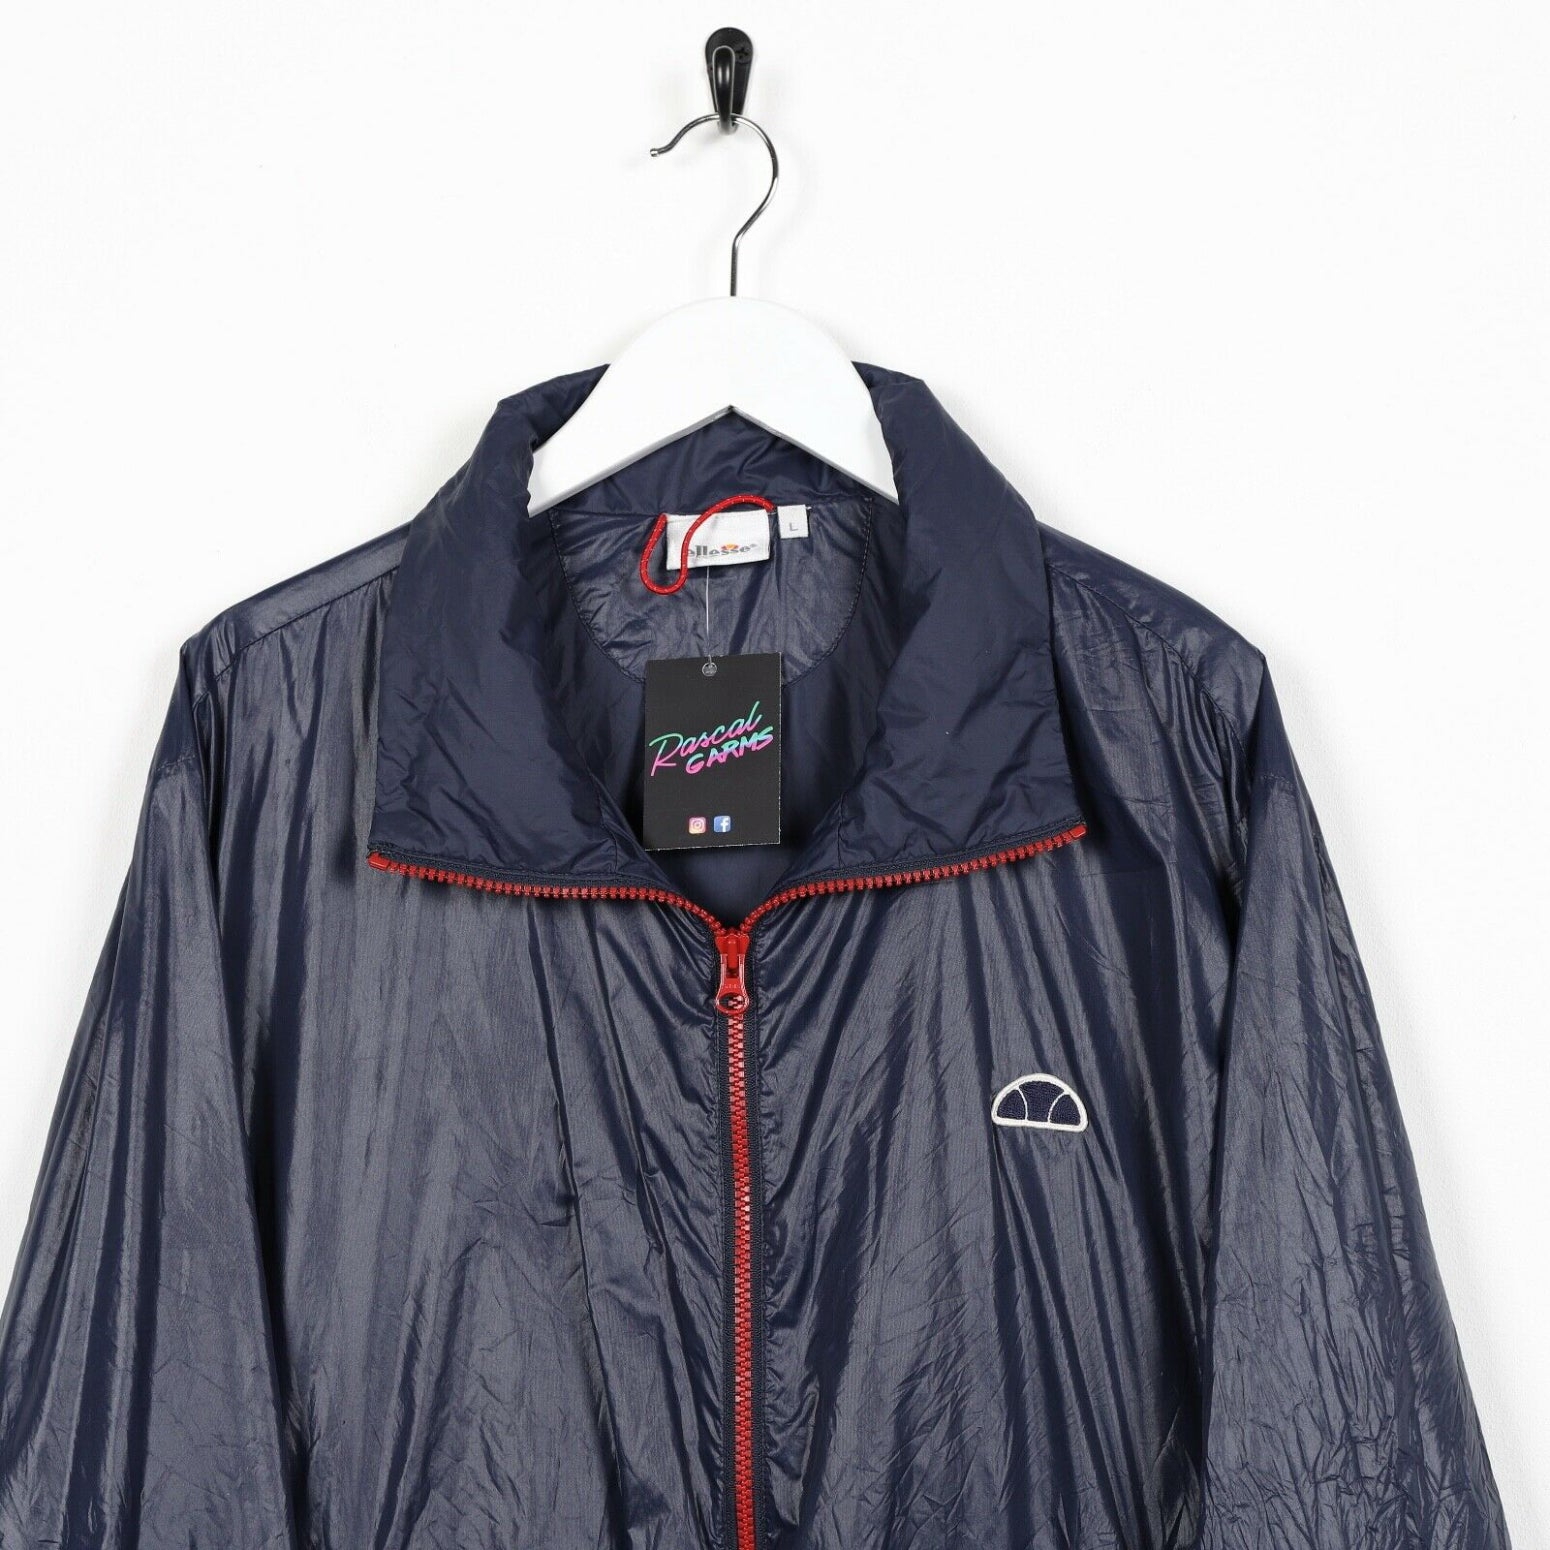 Vintage ELLESSE Soft Shell Windbreaker Festival Jacket Navy Blue | Large L